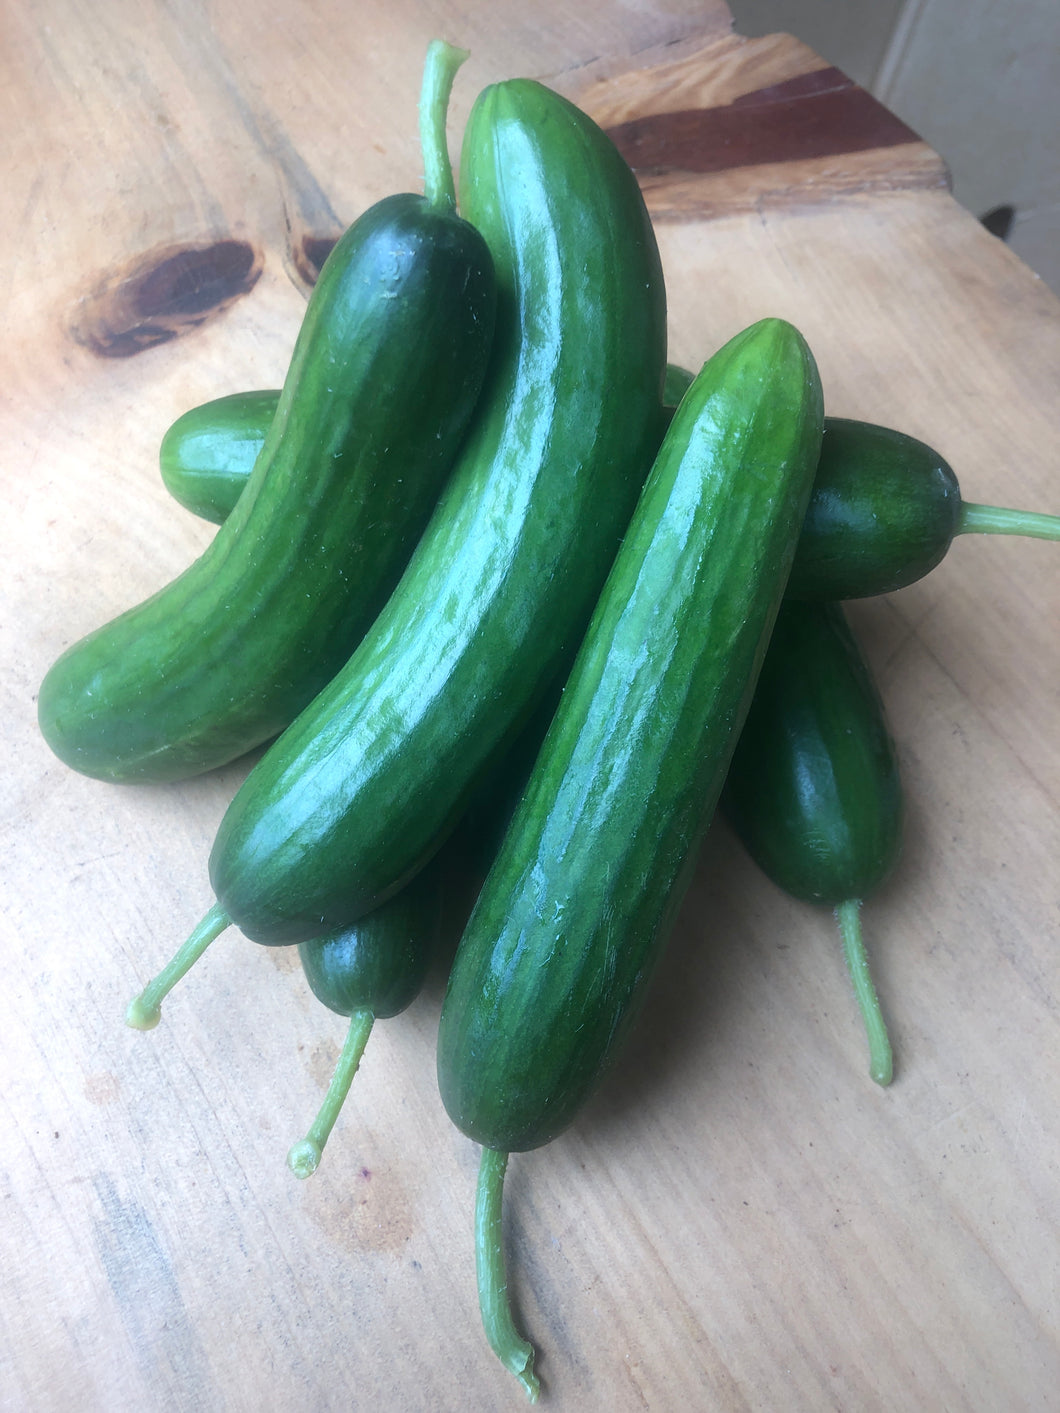 Lebanese cucumber by the piece